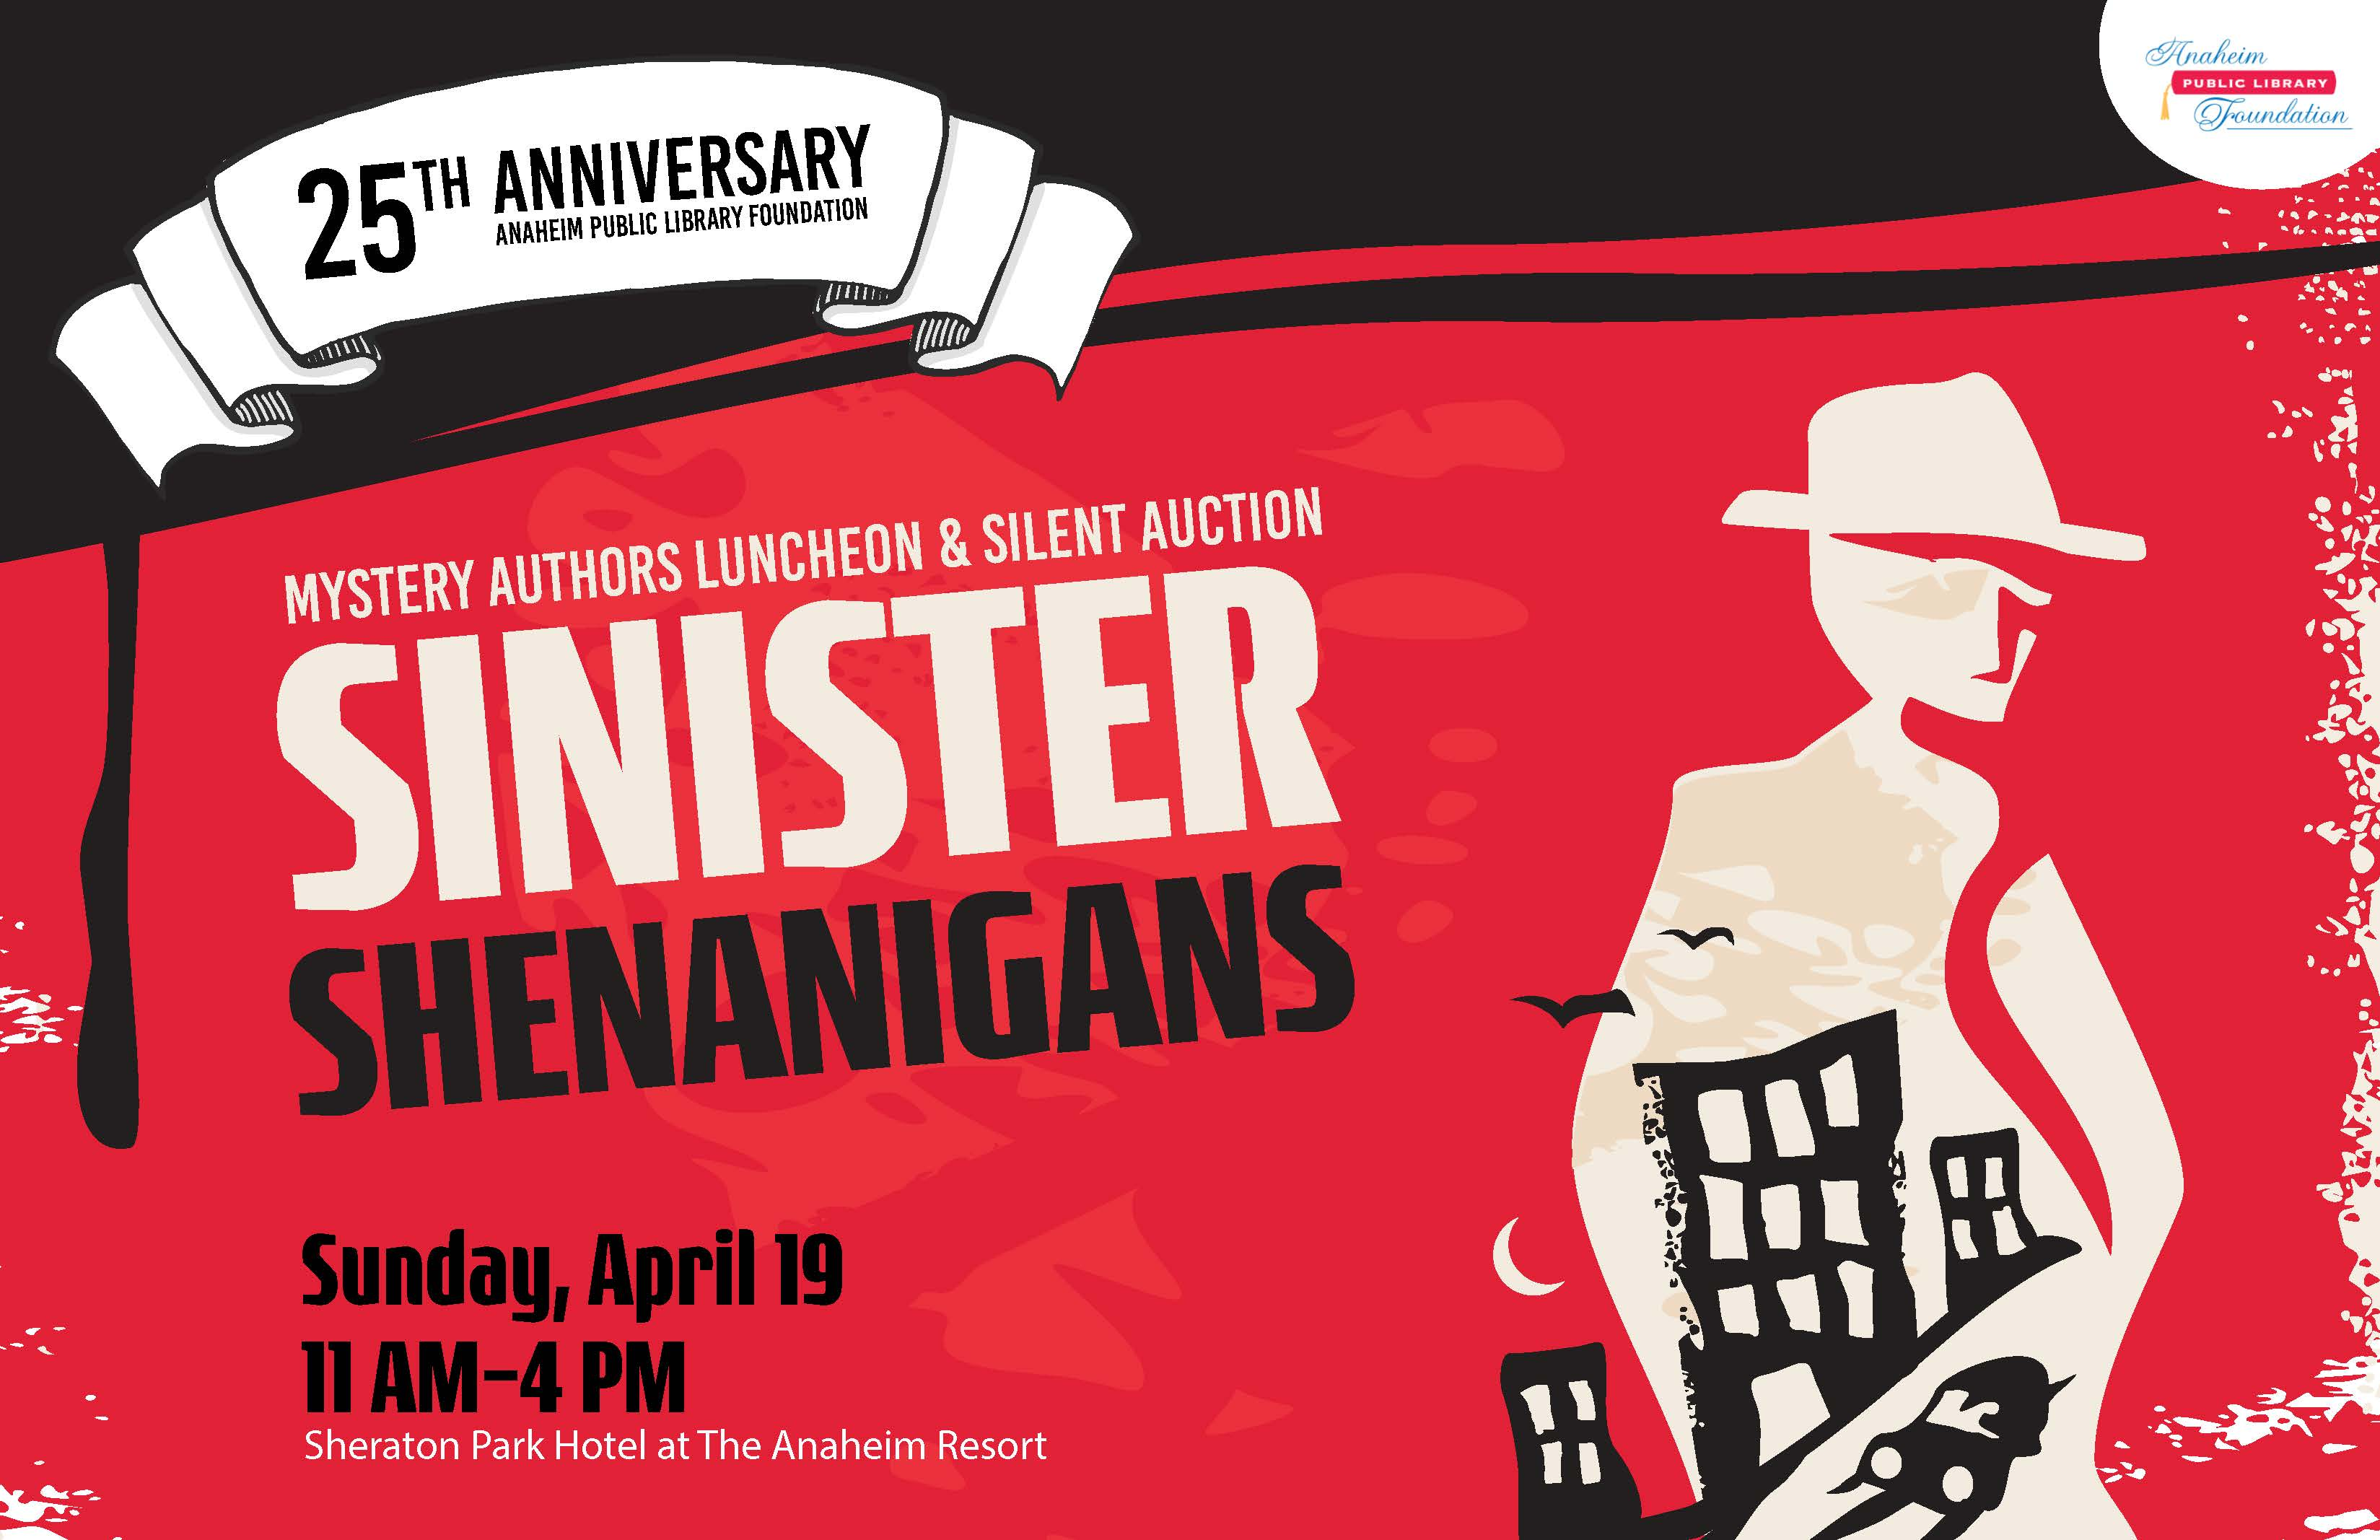 Mystery Authors Luncheon & Silent Auction